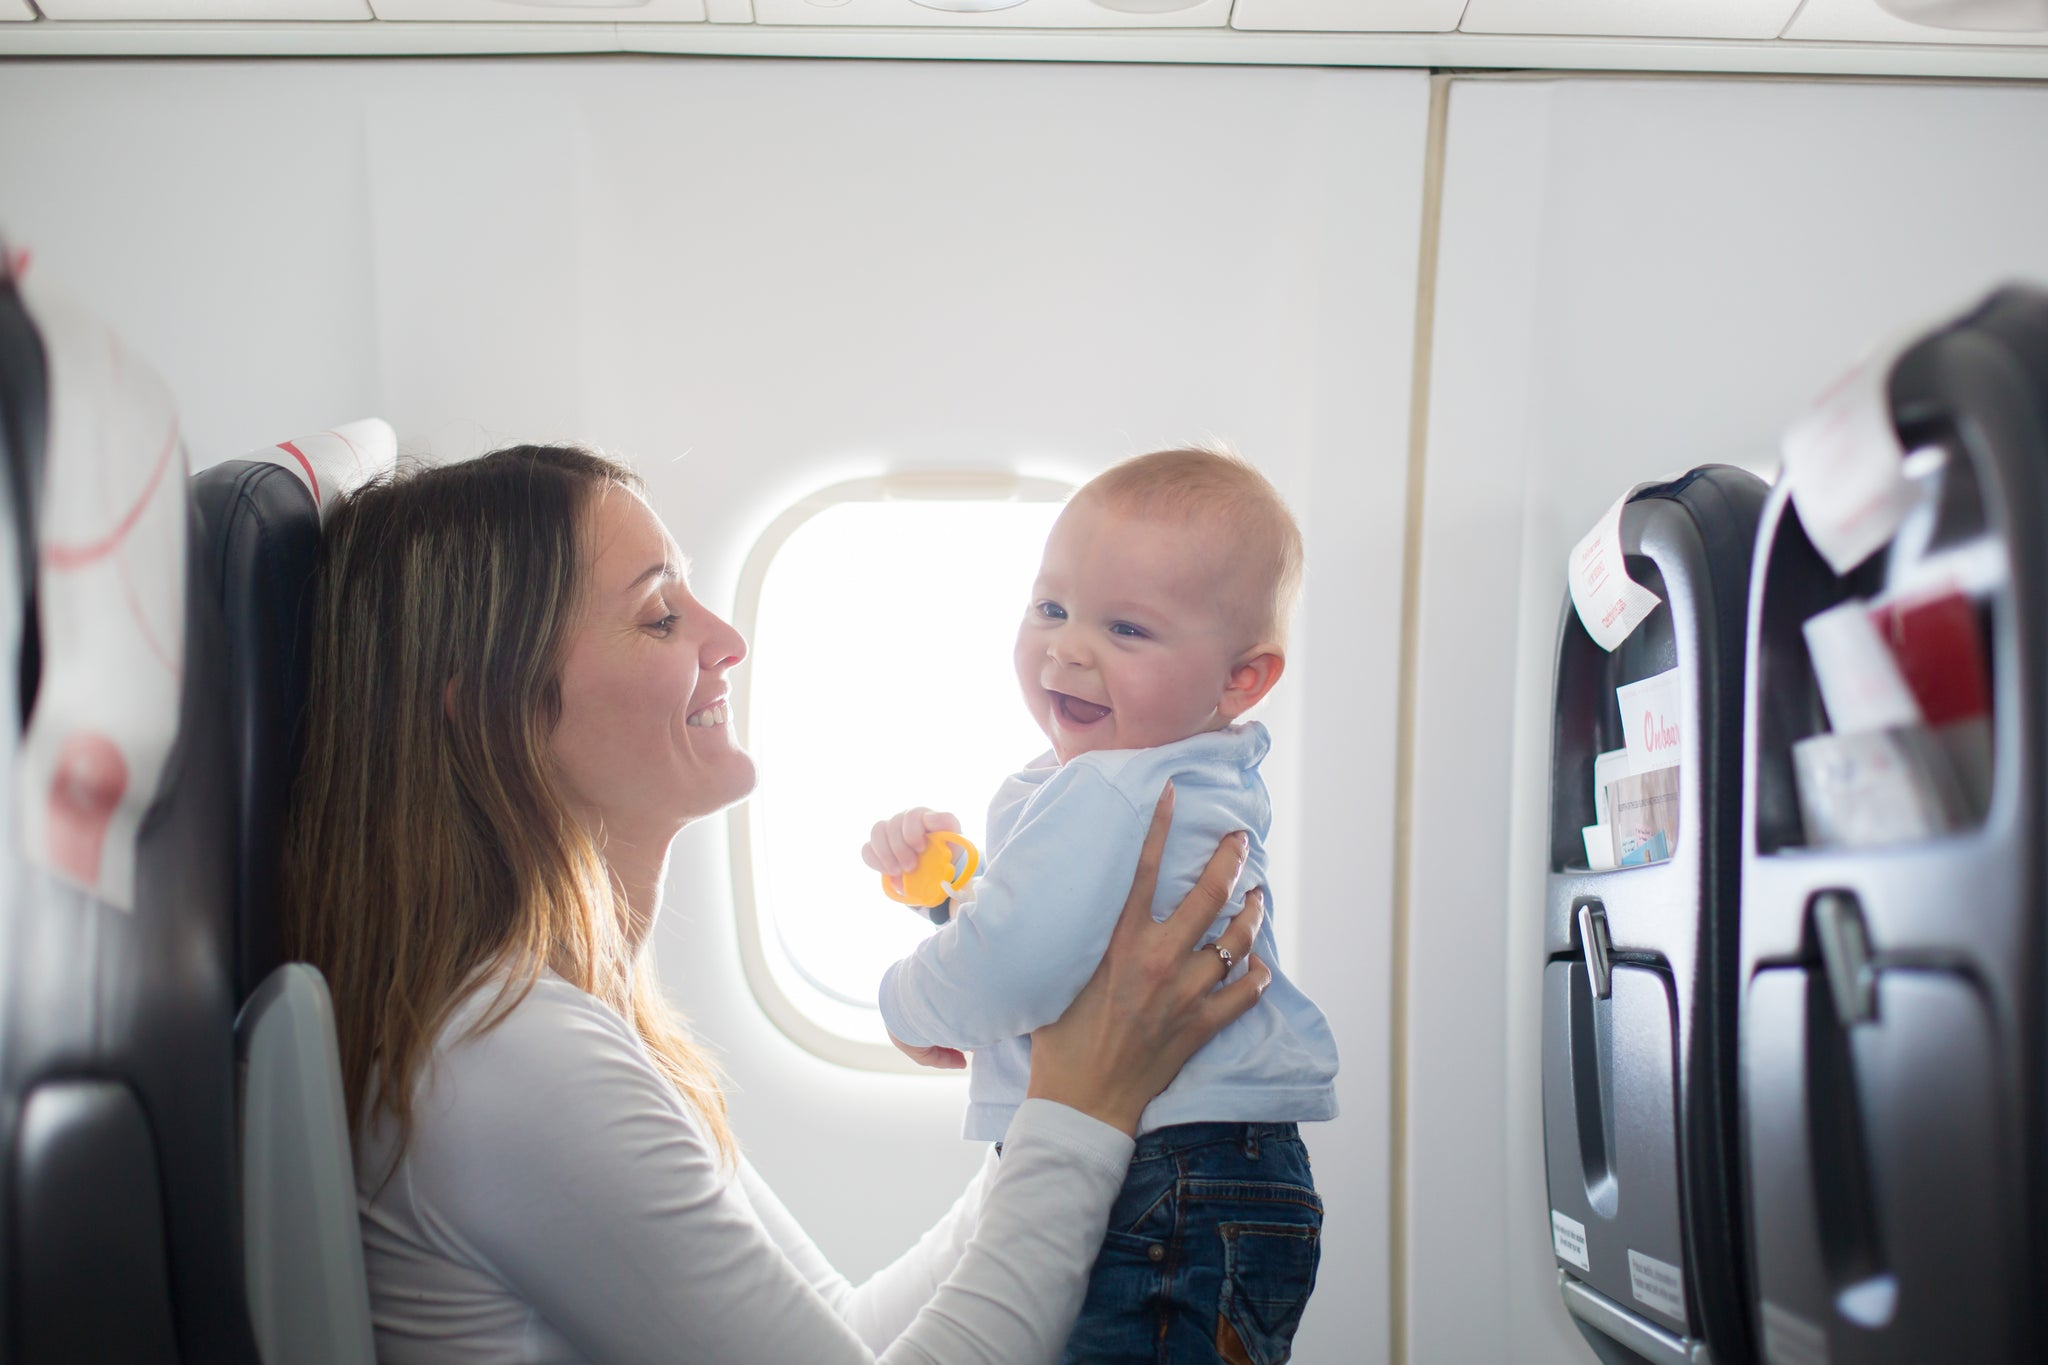 7 insider tips for flying with a baby